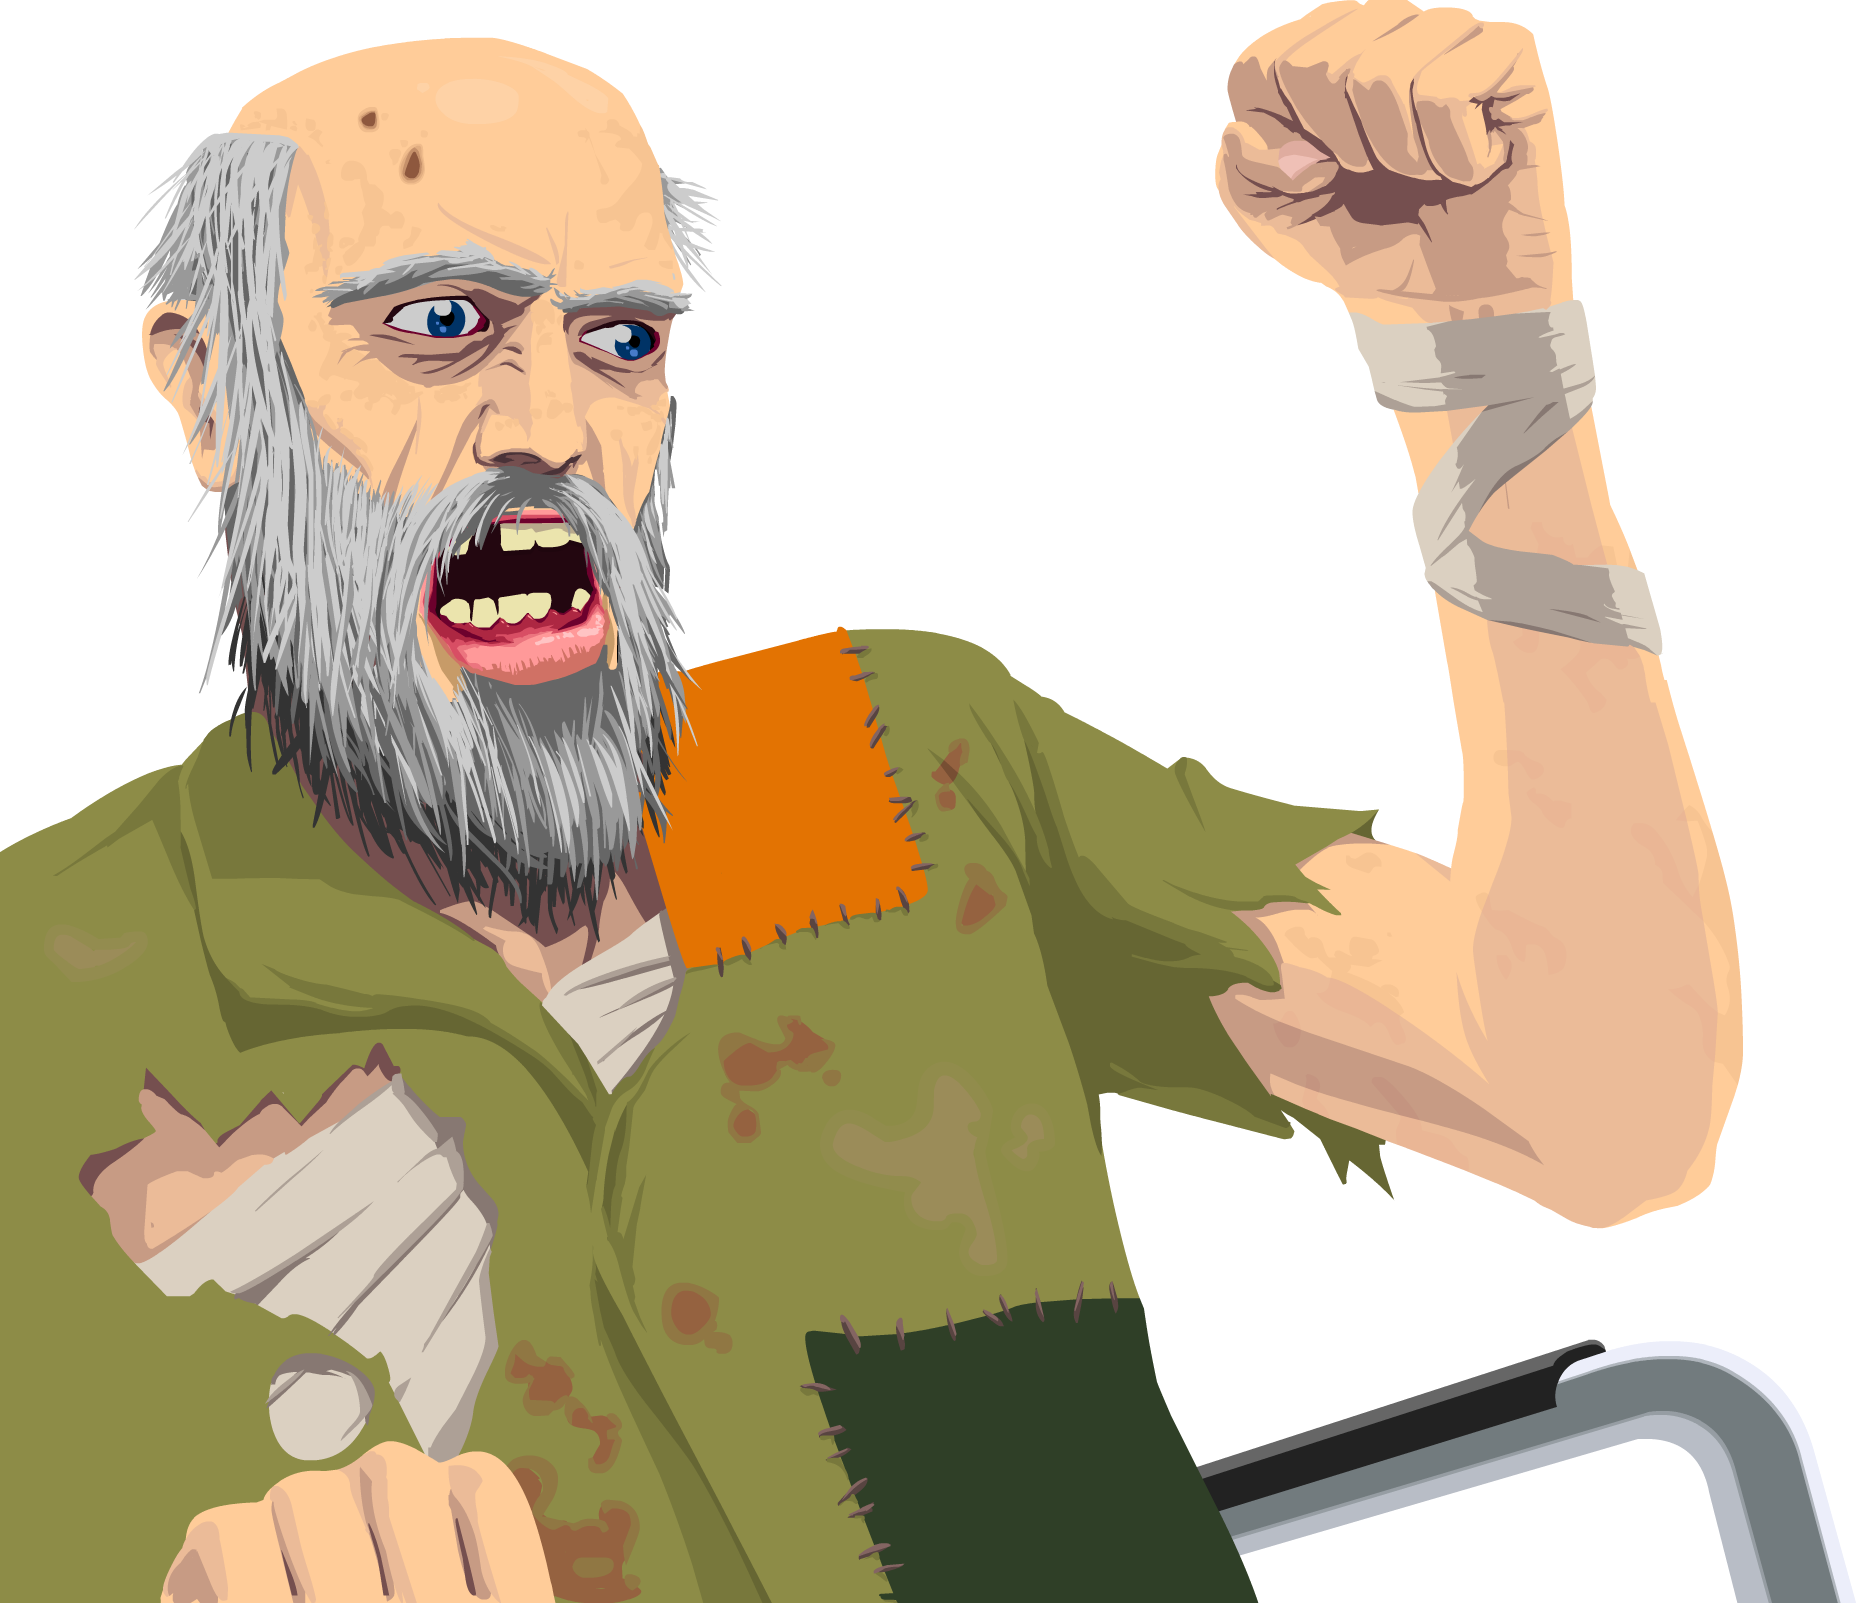 happy wheels download full version